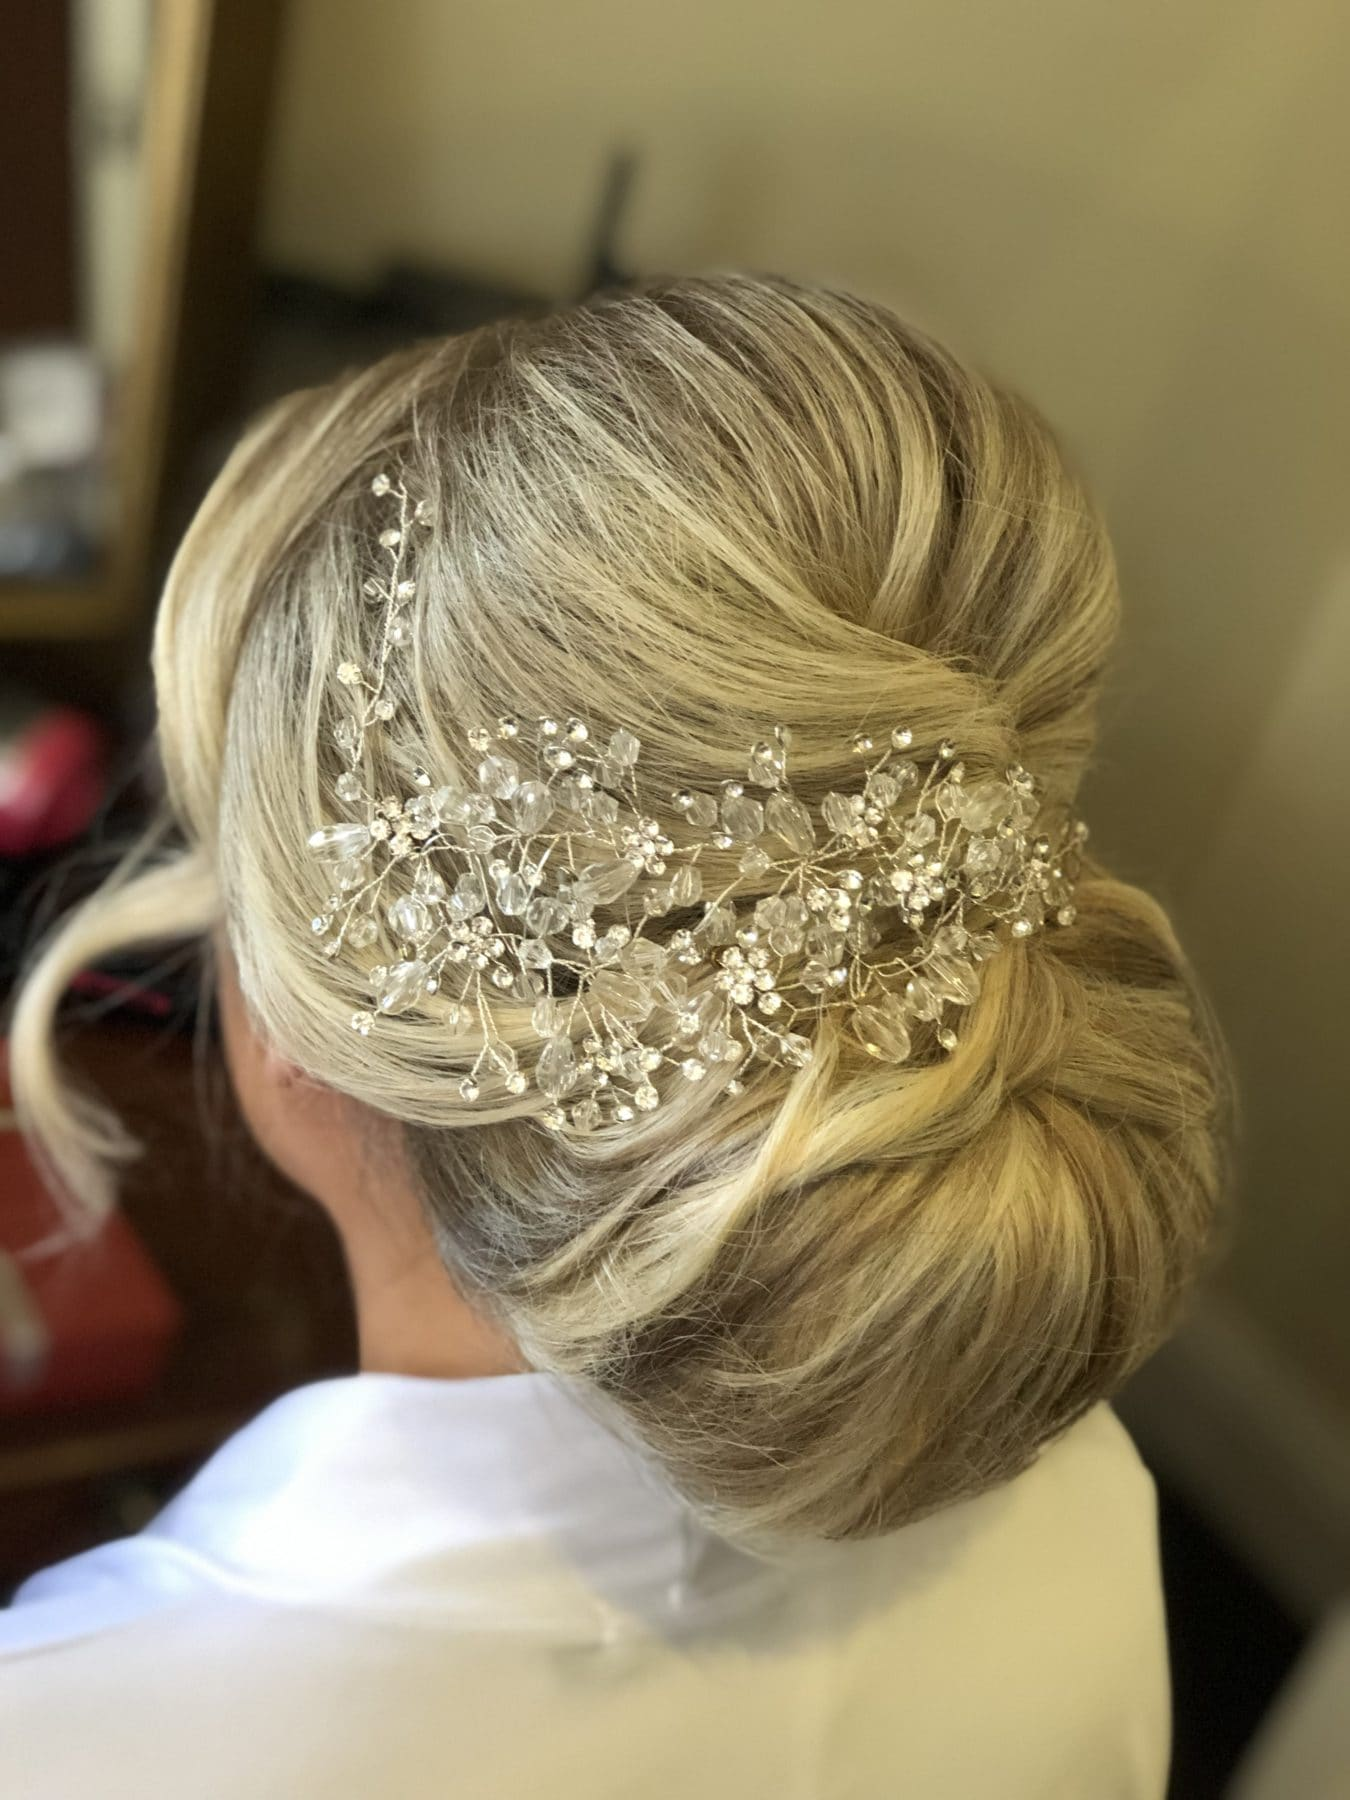 aimi-clark-hair-wedding-hair-stylist